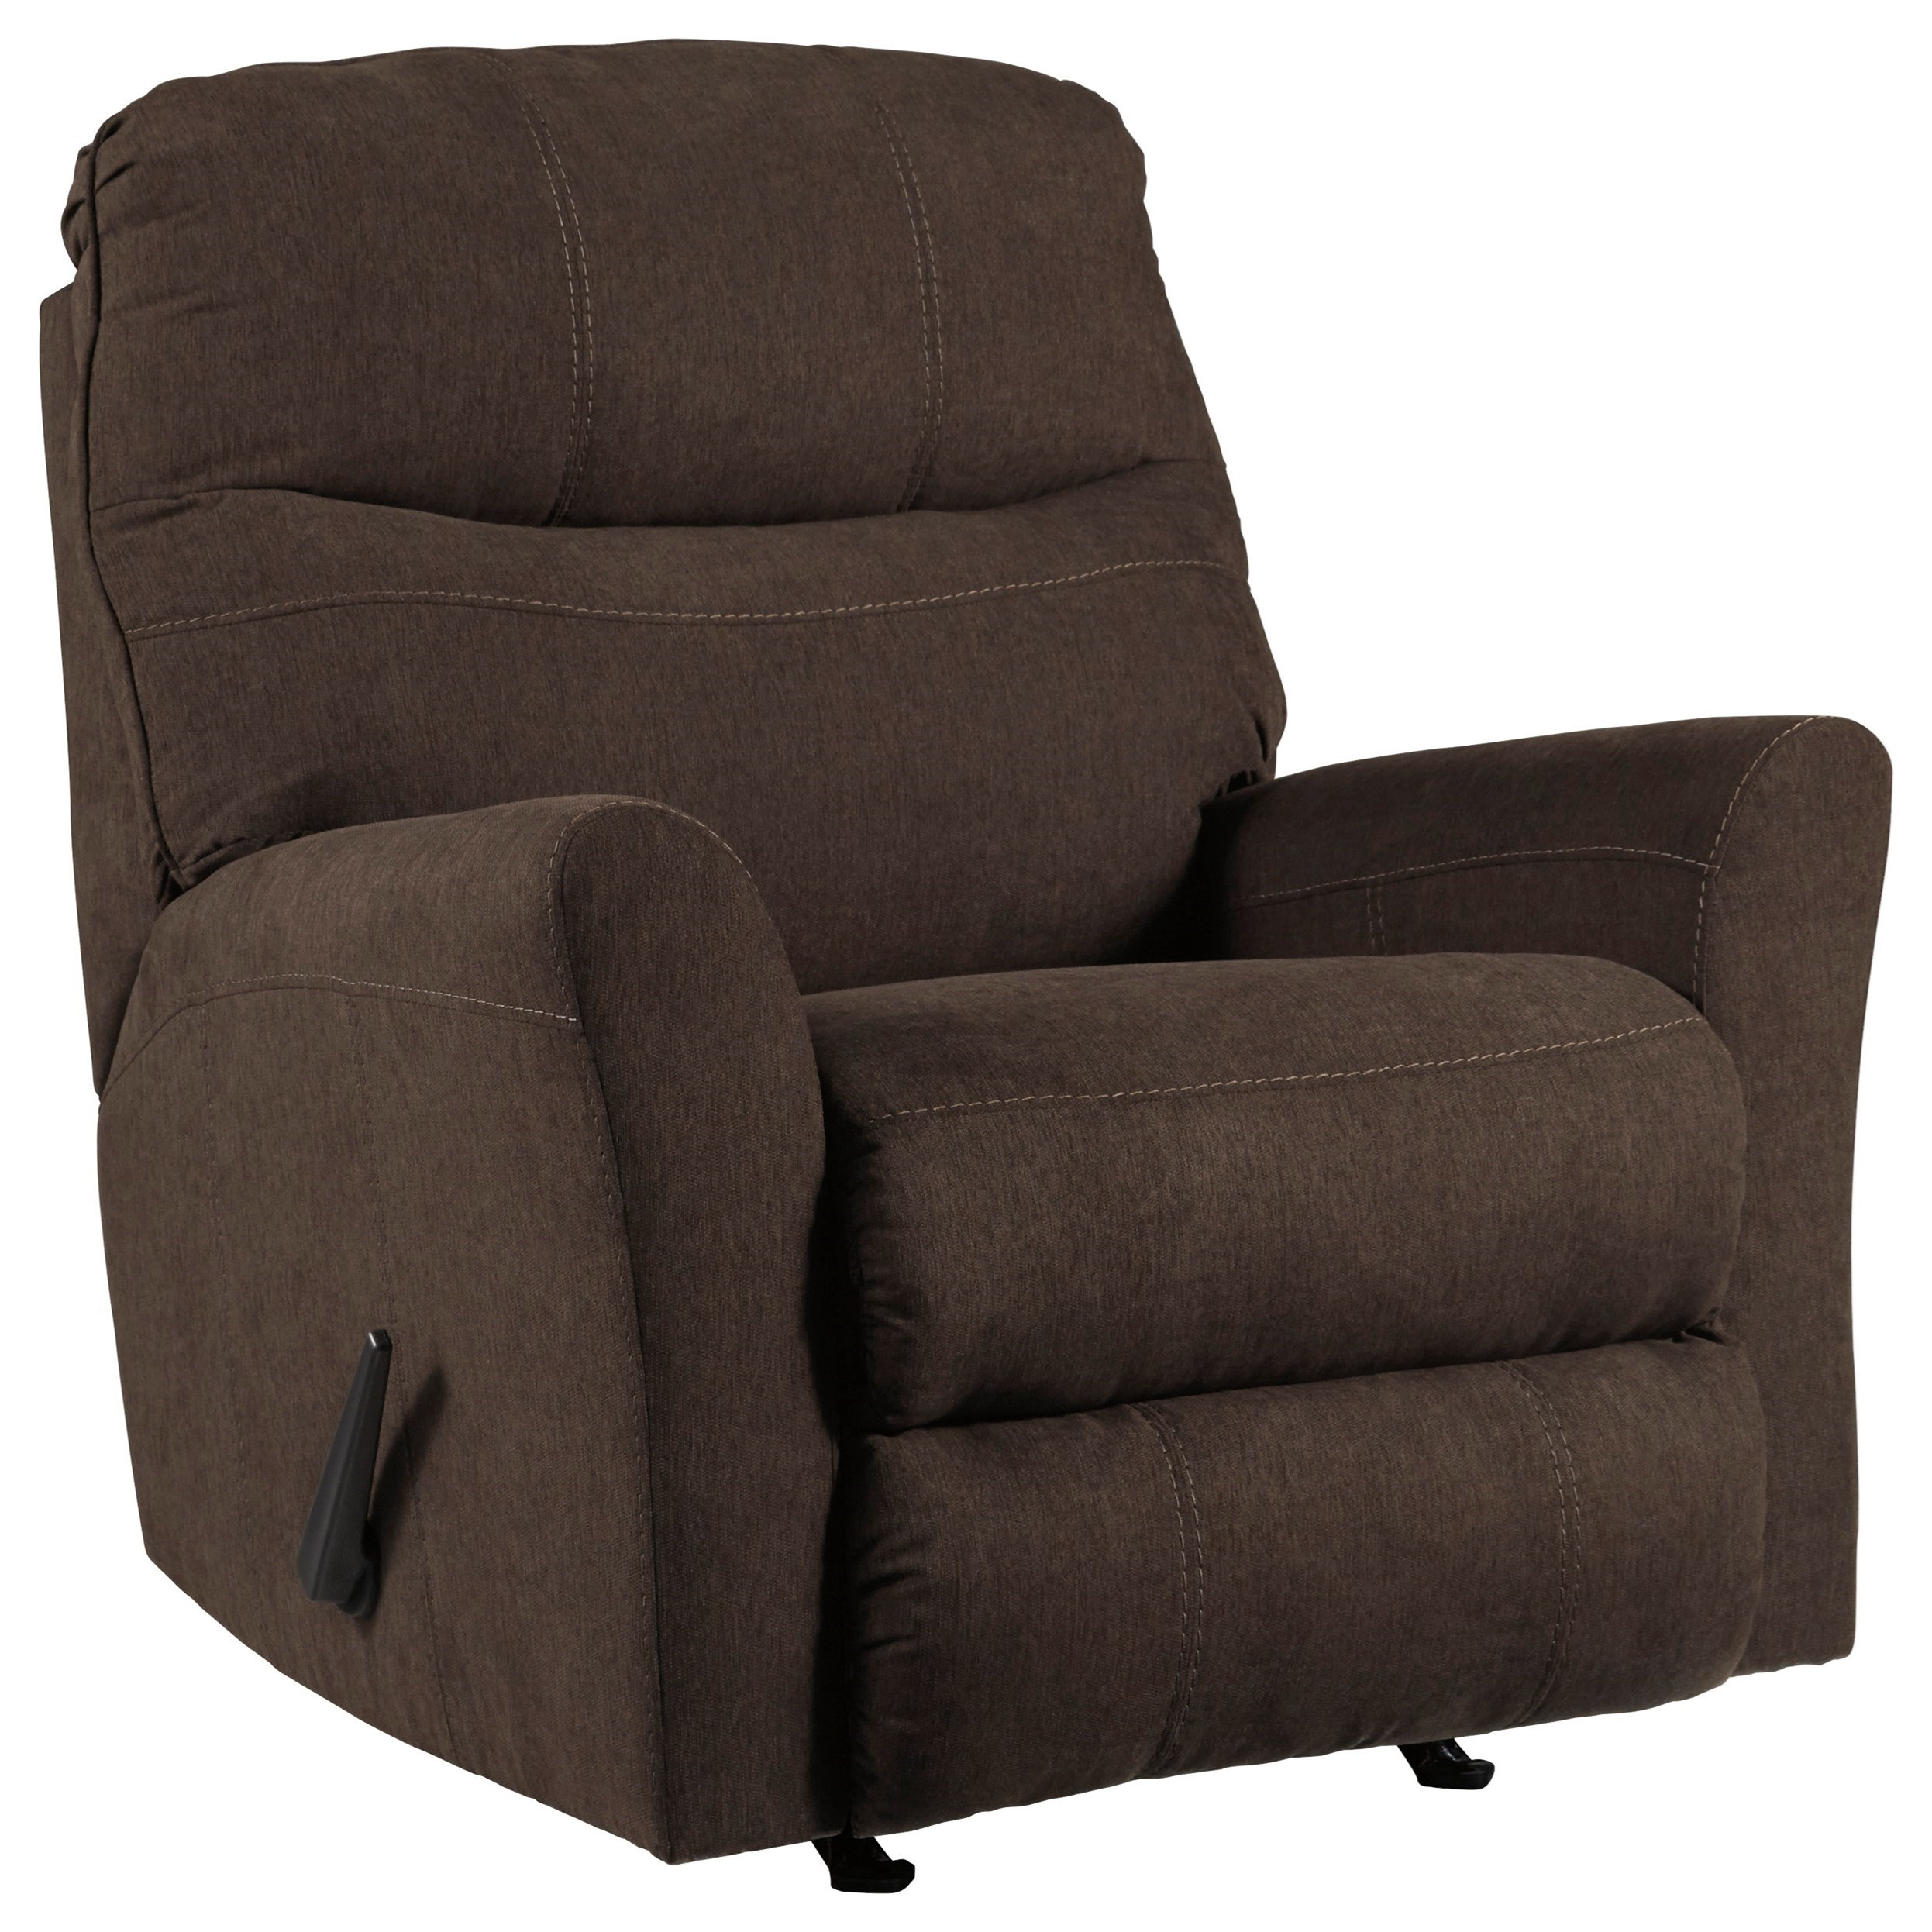 Mayberry Rocker Recliner by Benchcraft at Walker's Furniture